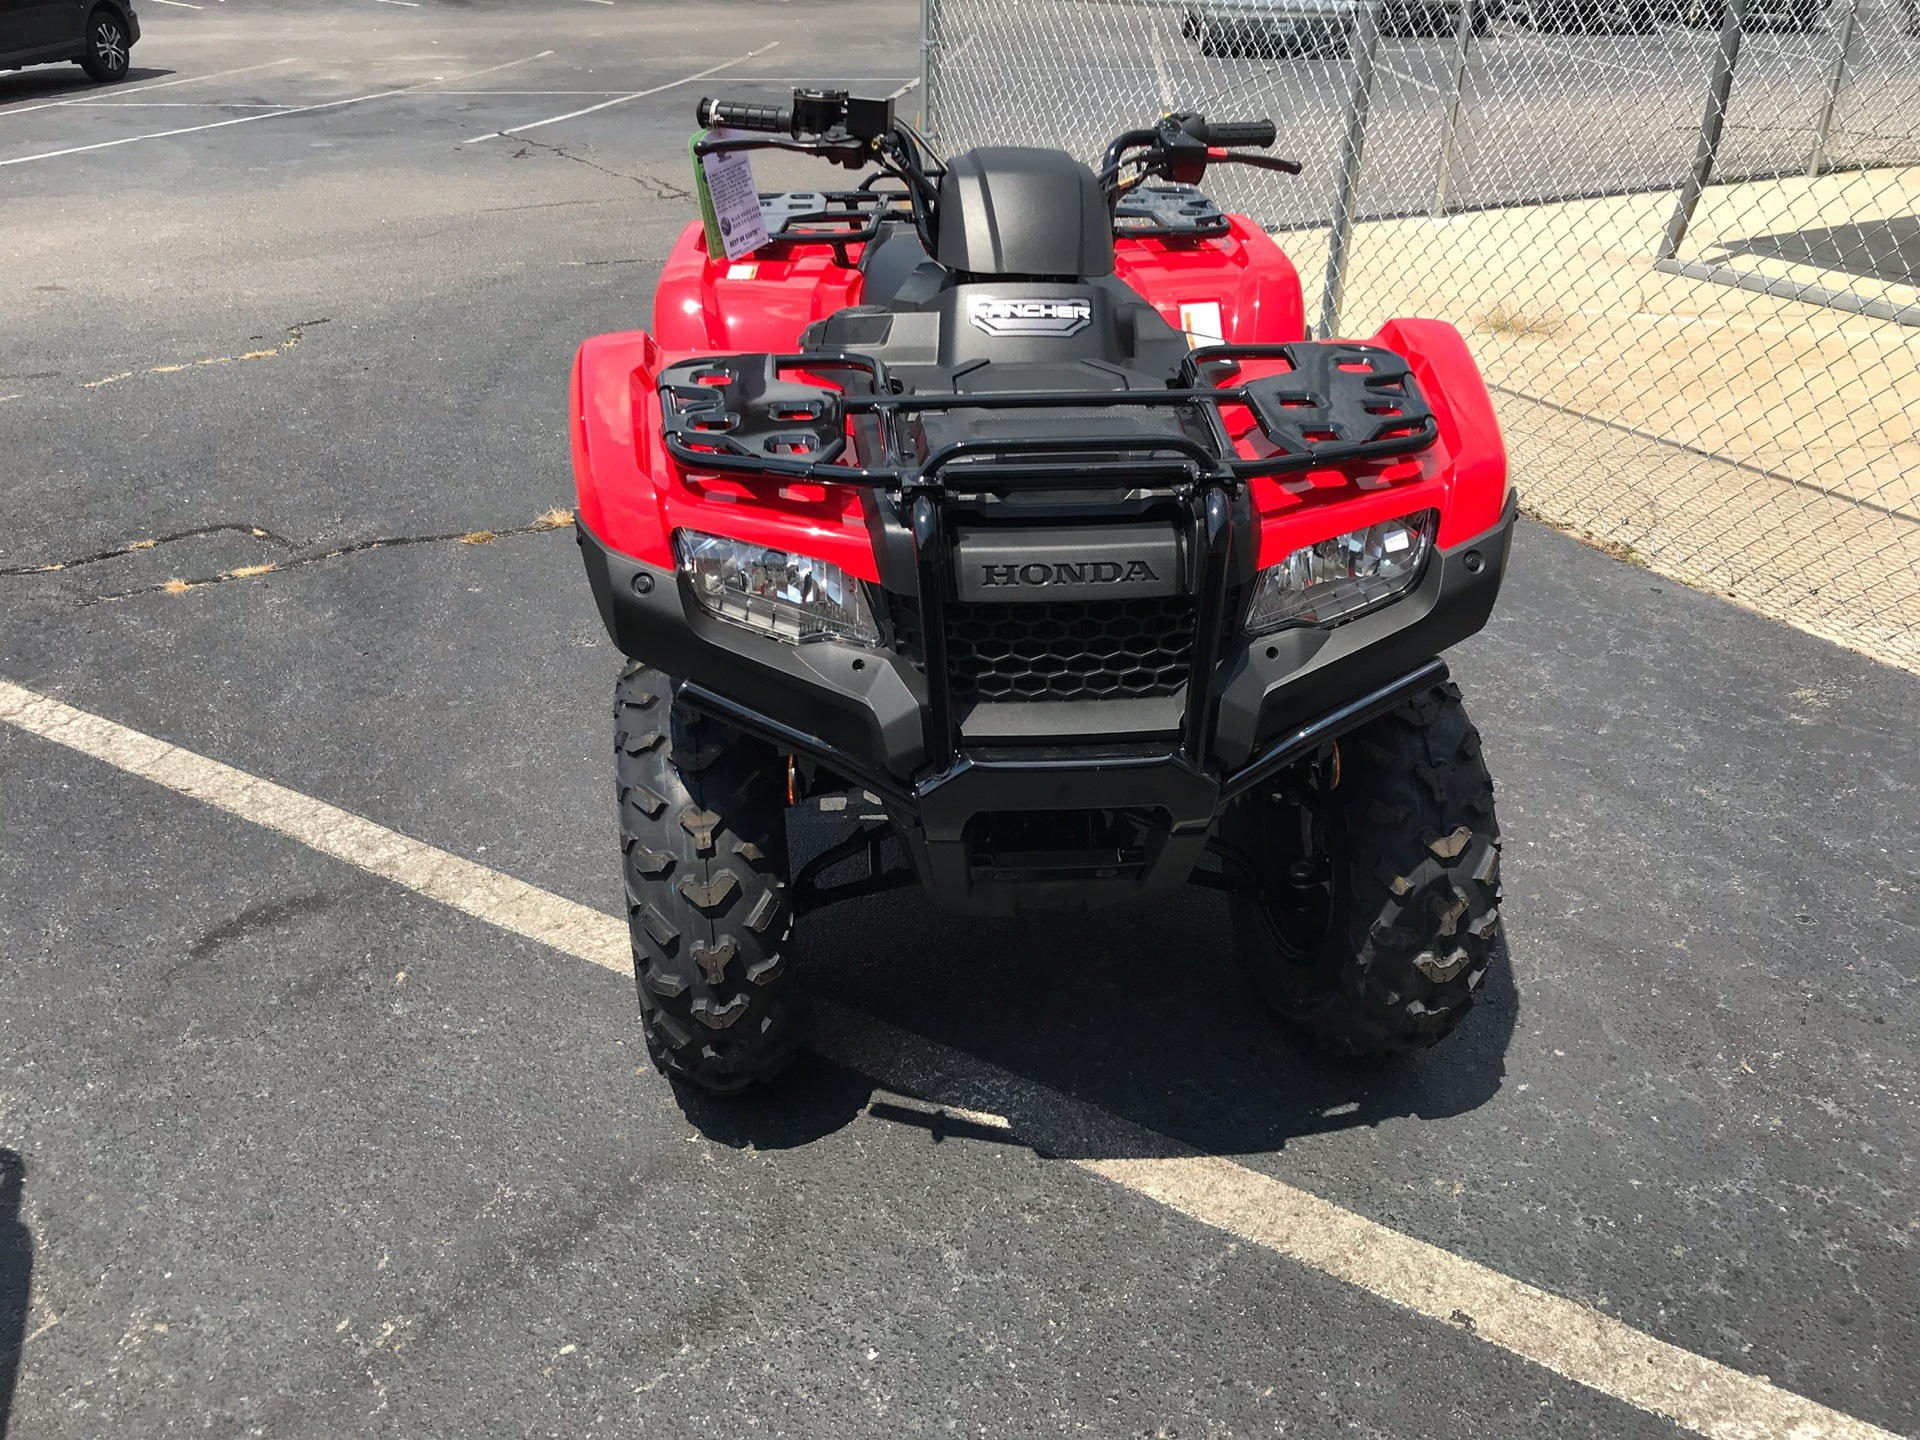 2020 Honda FourTrax Rancher in Sanford, North Carolina - Photo 9